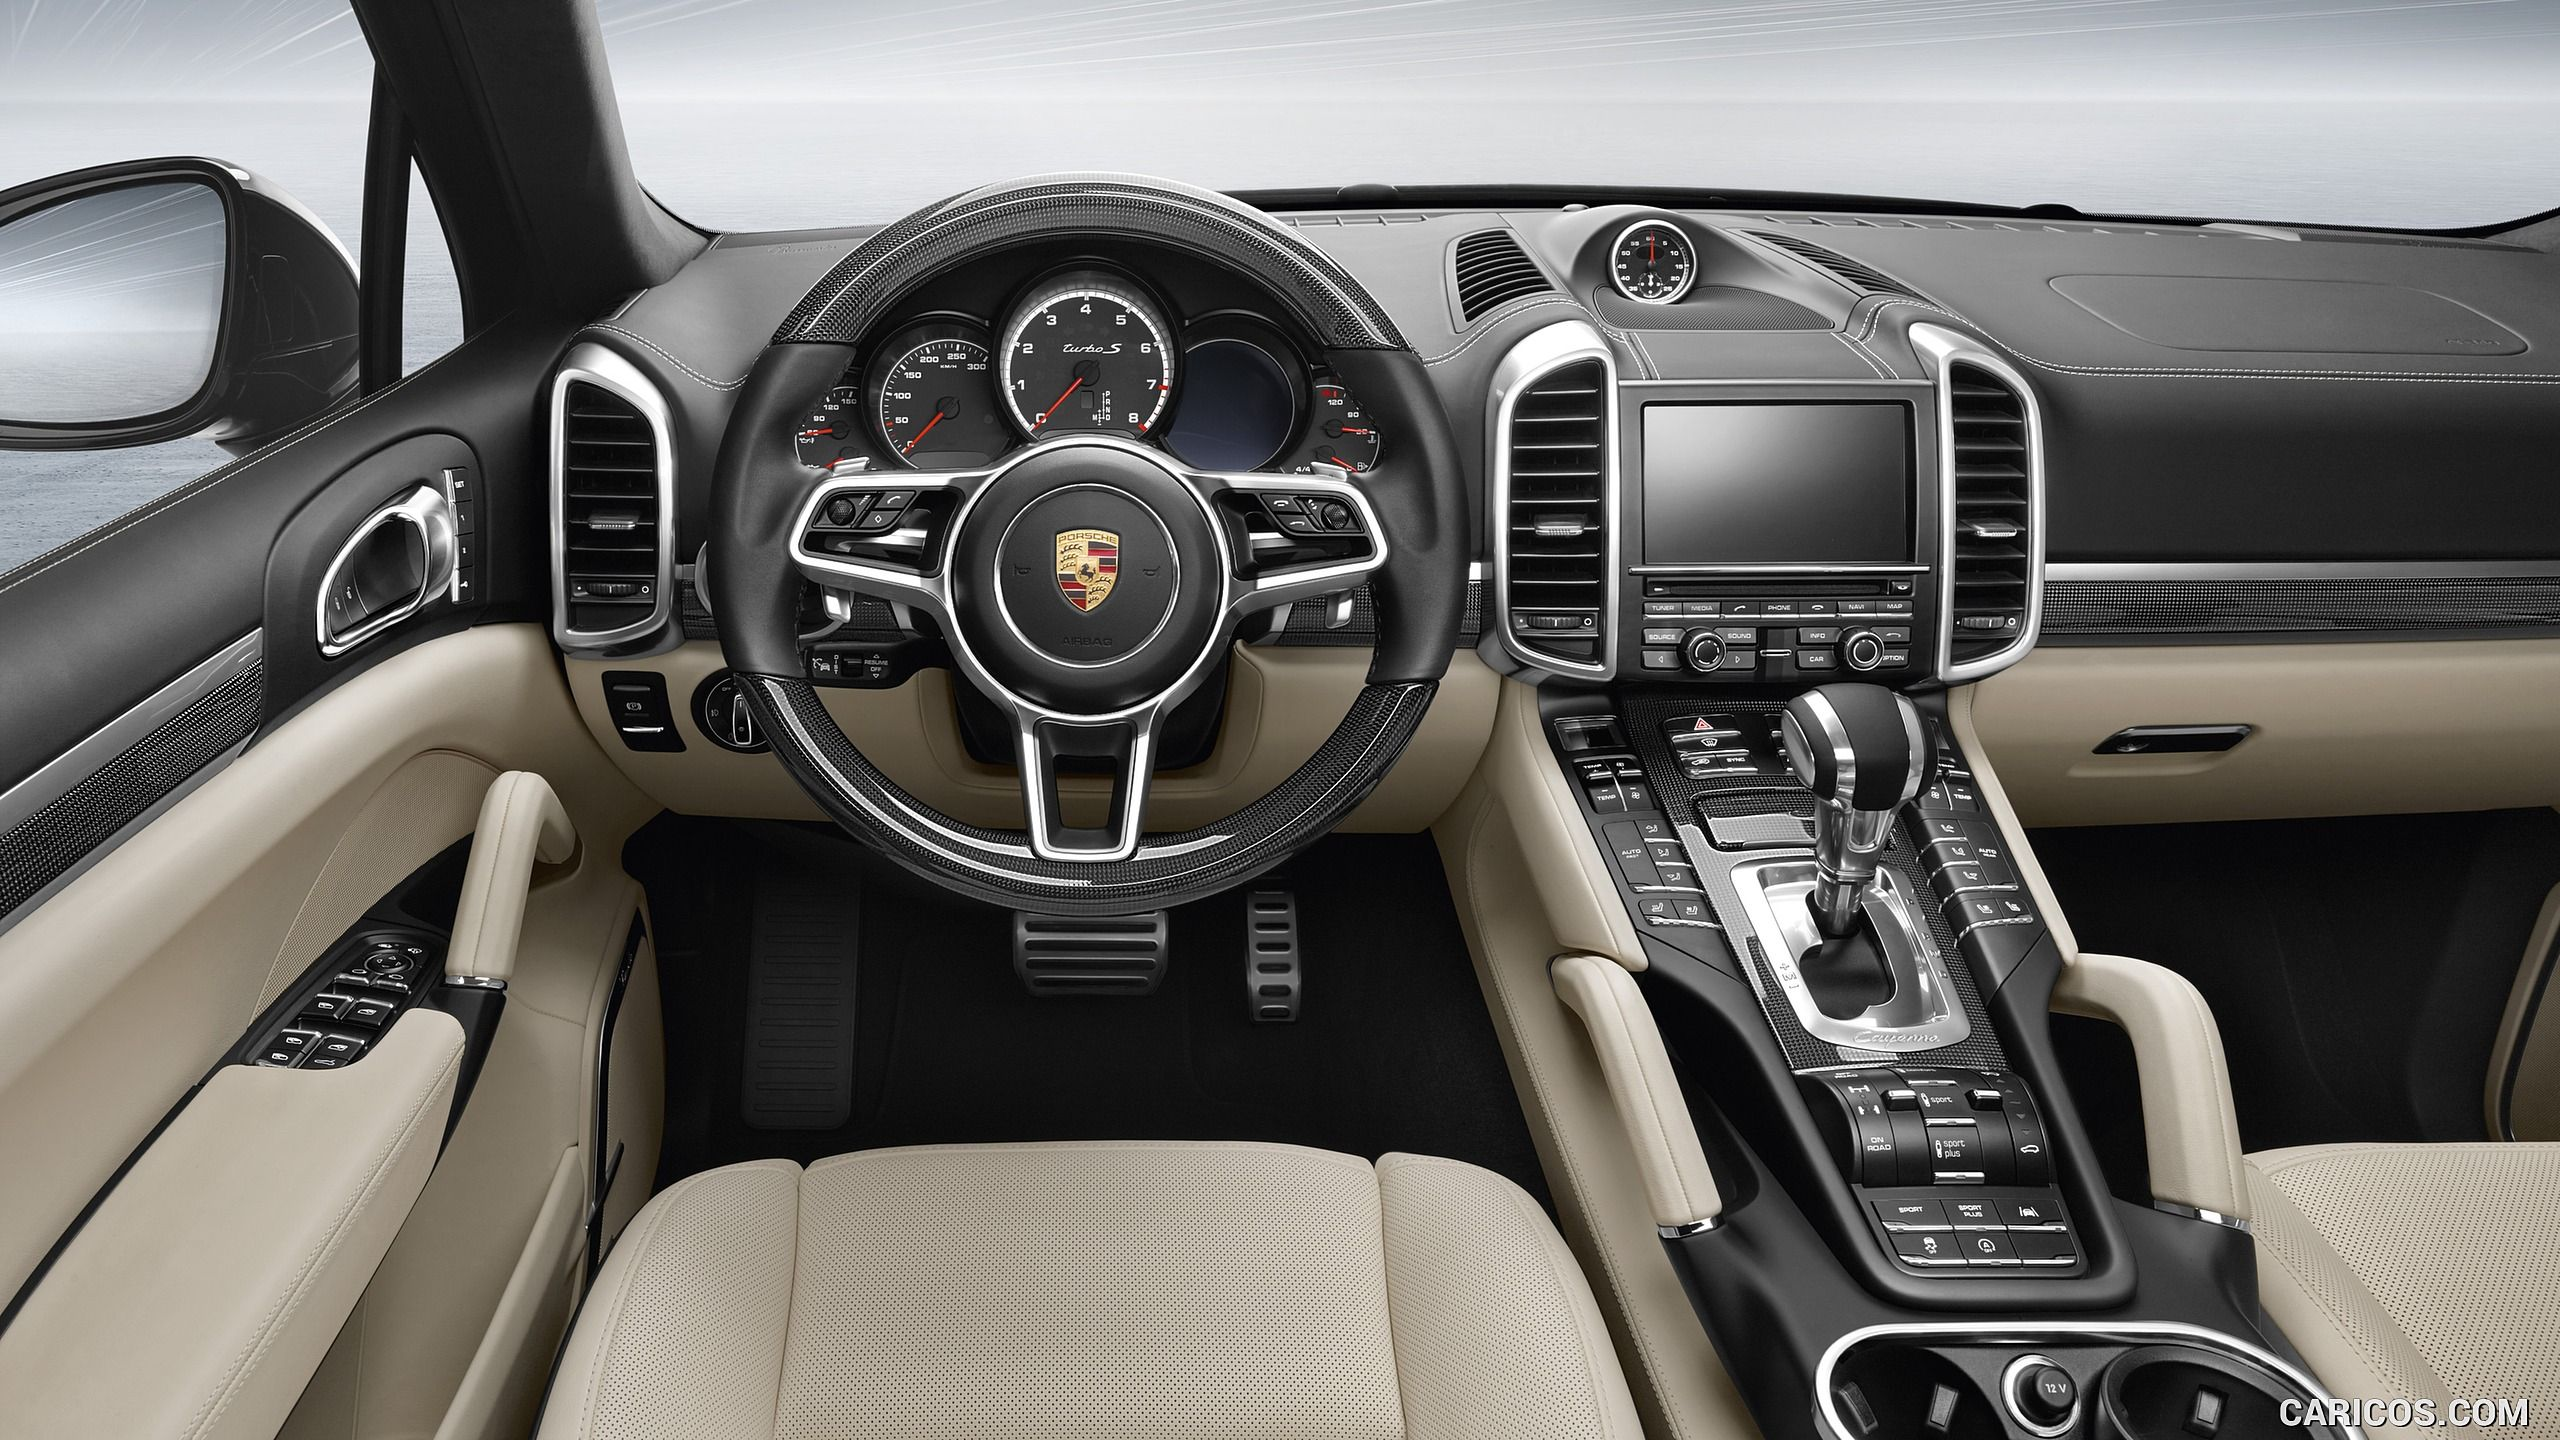 2014 porsche cayenne turbo s interior photo 532302 s 1280x782 jpg 1280 782 hoopties pinterest